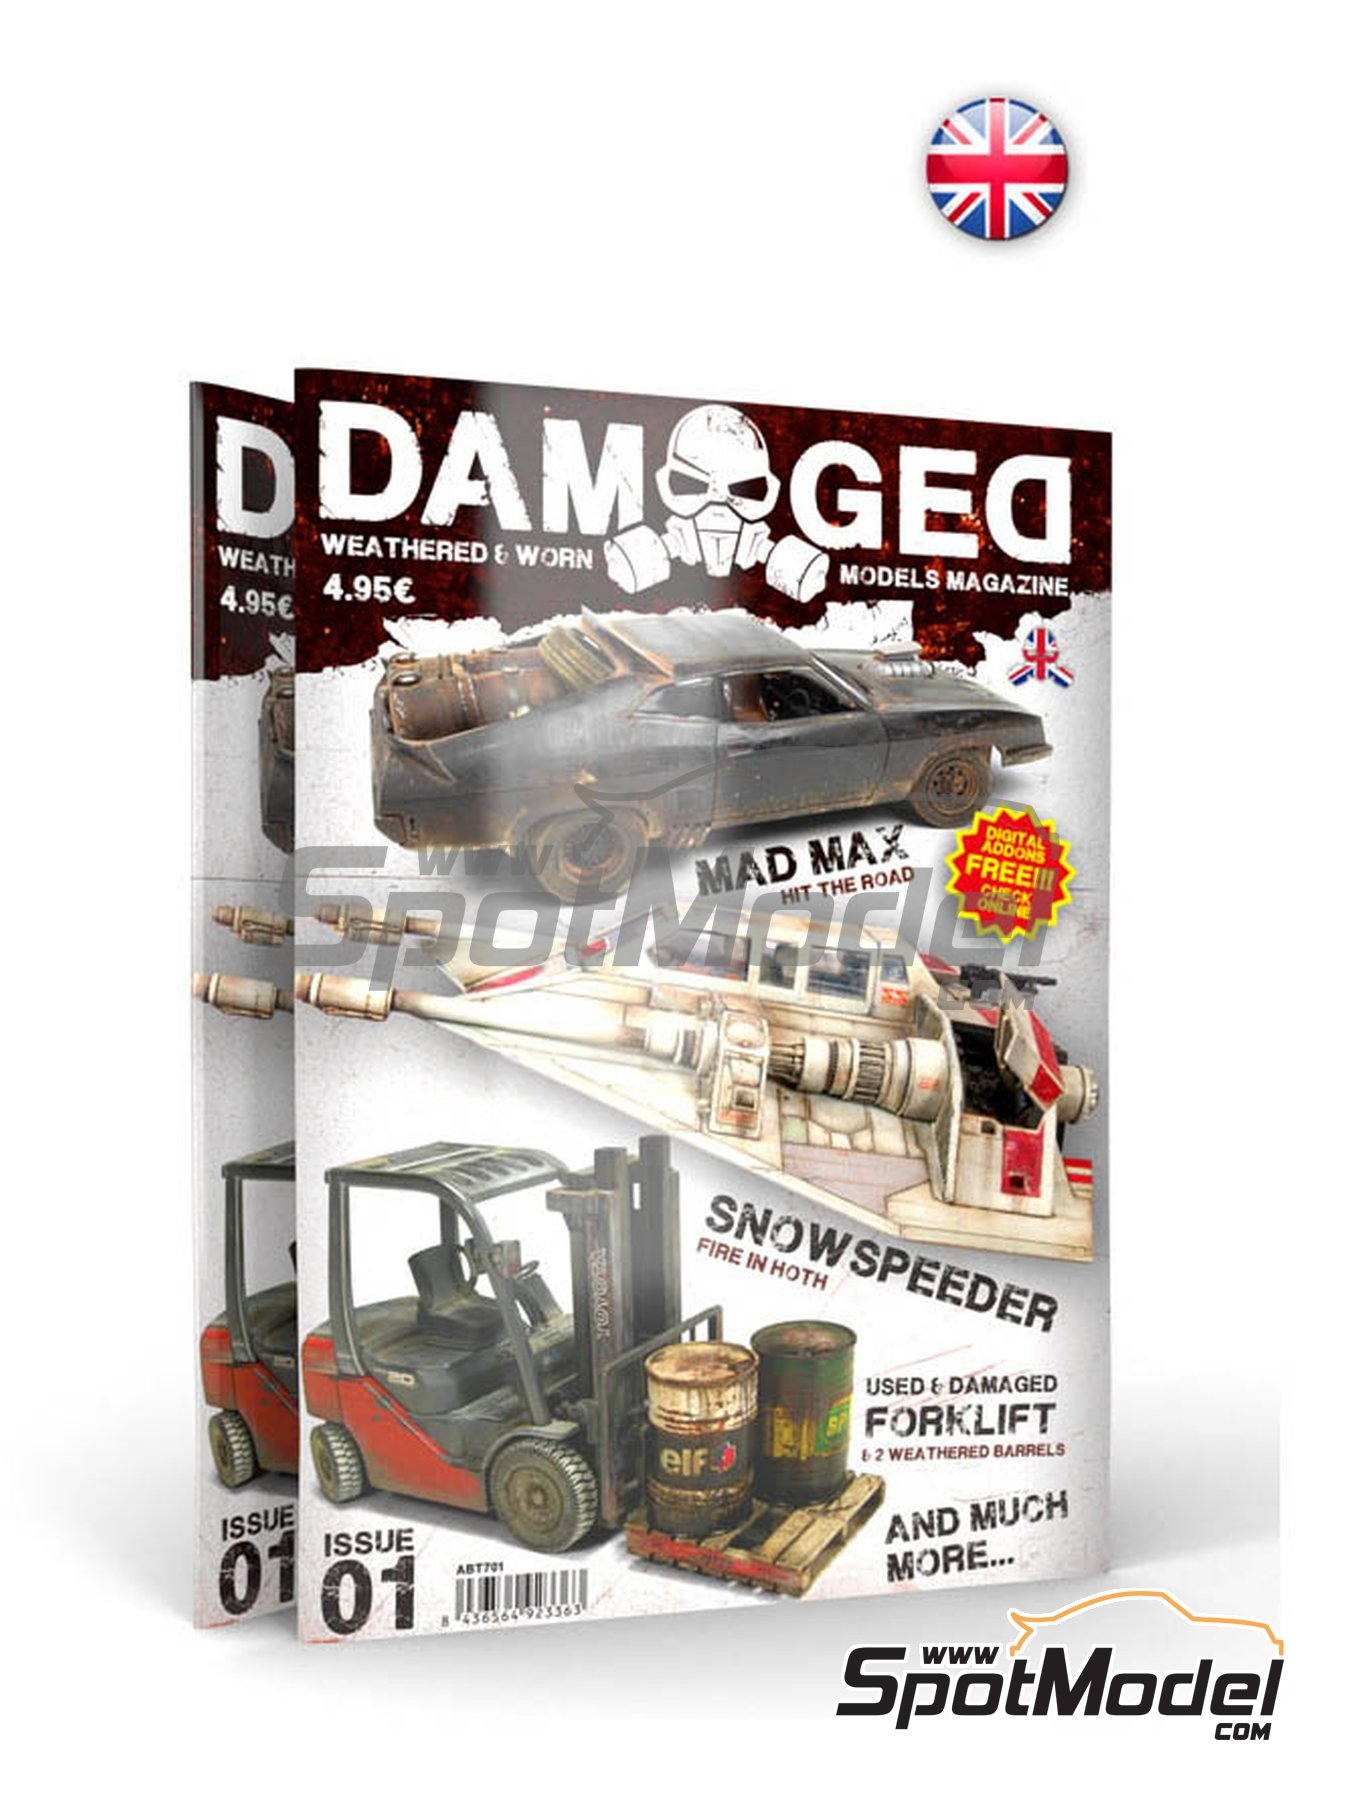 Damaged - Weathered and worn: Number 1 - english edition | Magazine manufactured by AK Interactive (ref. ABT701) image